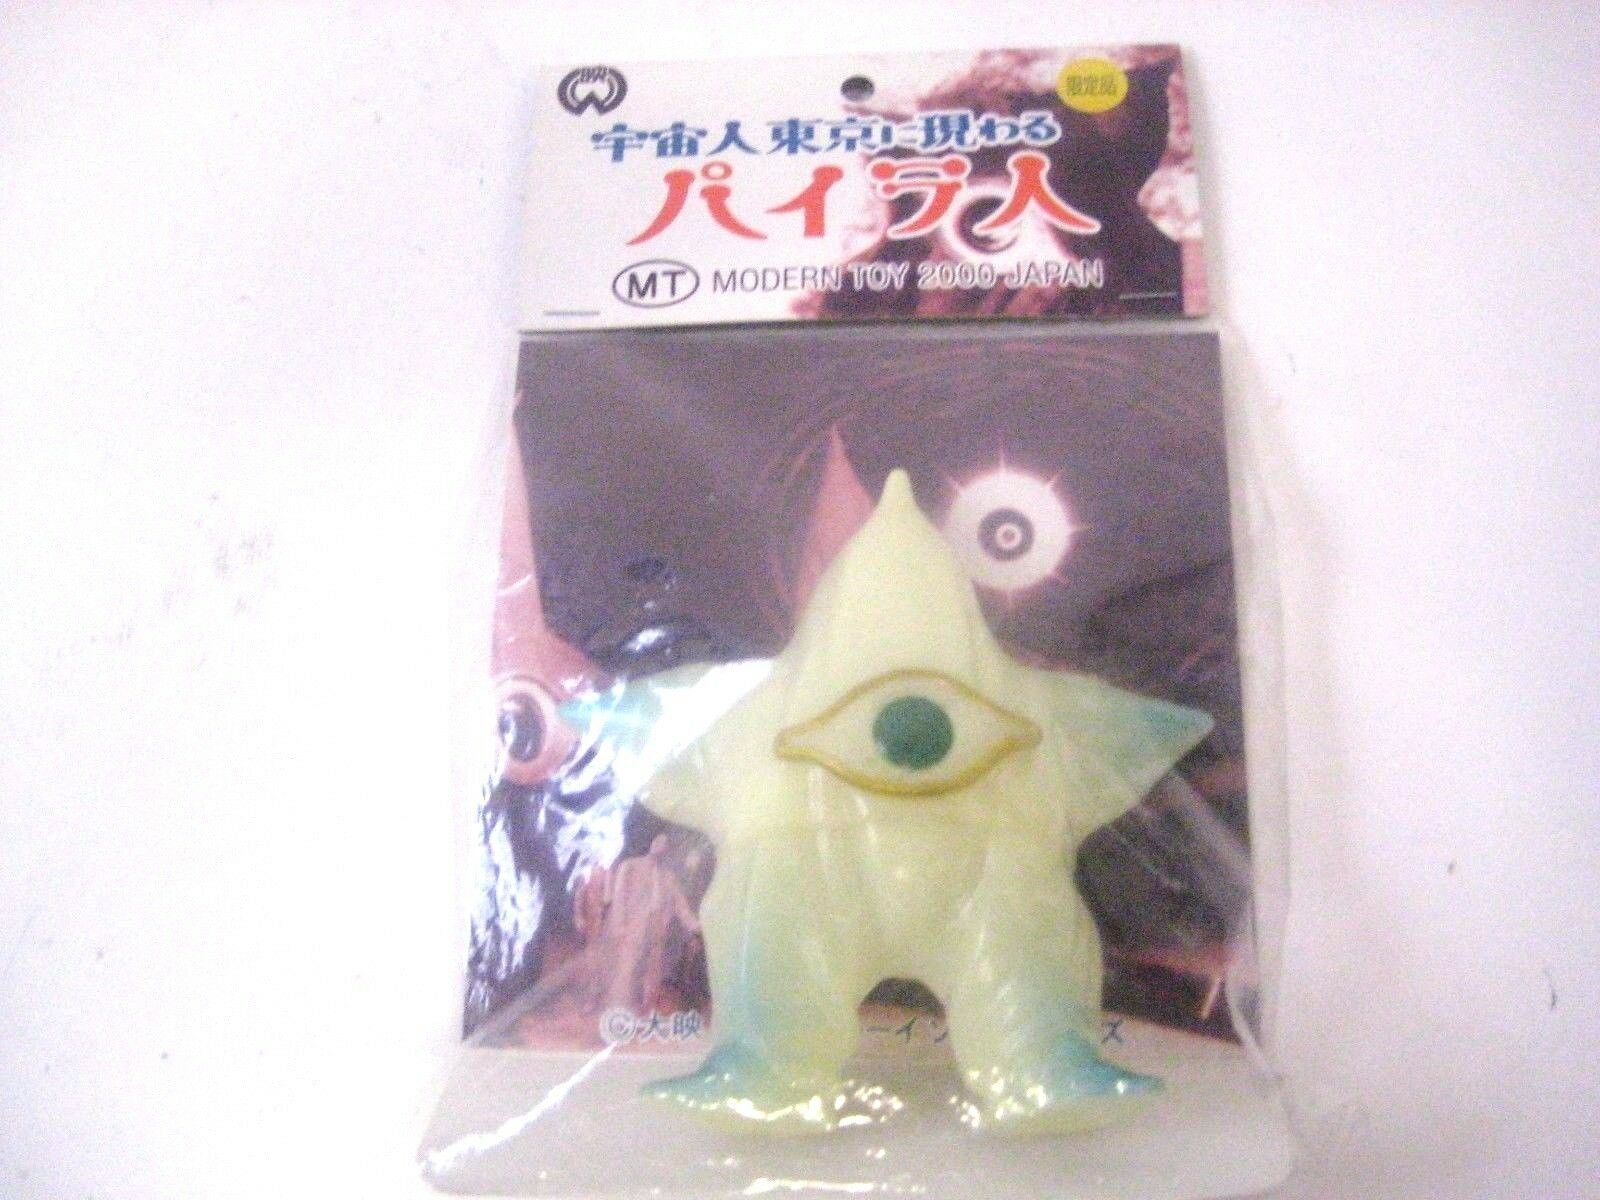 Blau Glow in the Dark Paira 4  Vinyl Figure by Modern Toy 2000 JAPAN sofubi NEW